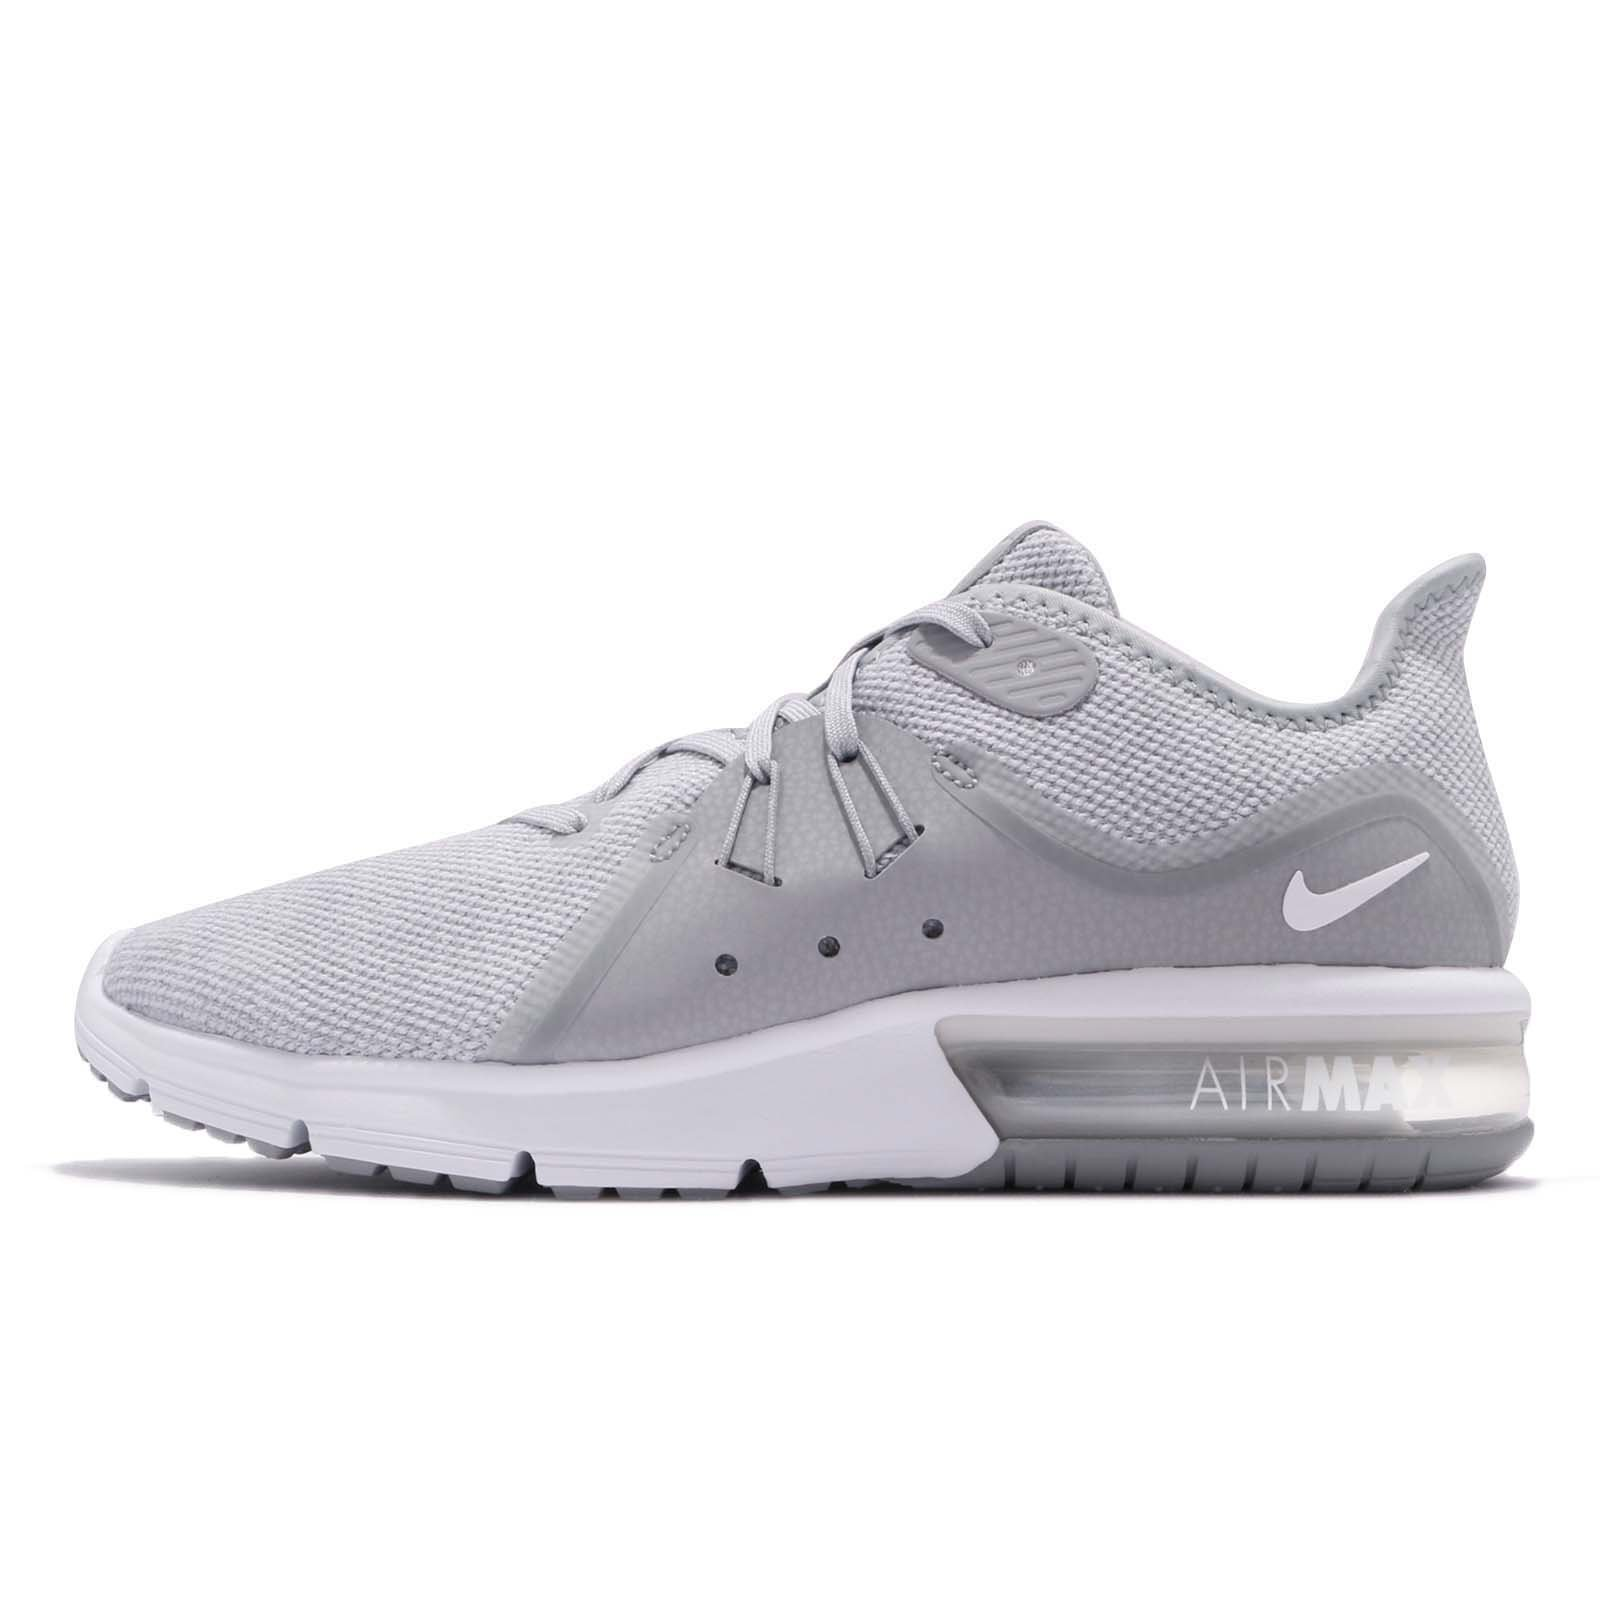 Nike 921694-003: Men's Air Max Sequent 3 Wolf Grey/White Running Sneaker (9 D(M) US Men)